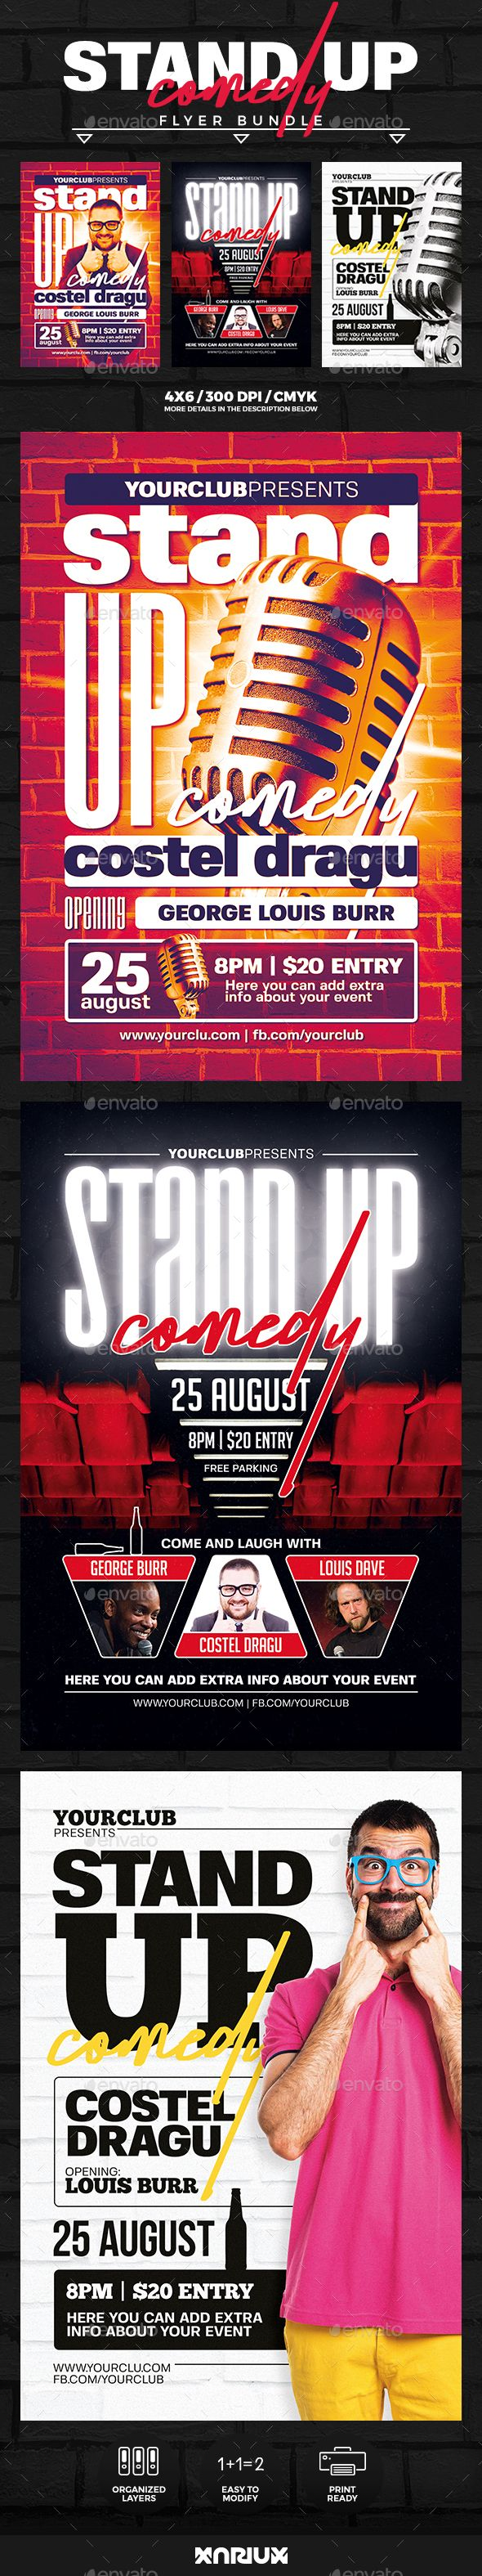 Stand Up Comedy Flyer Bundle Events Flyers Comedy Posters